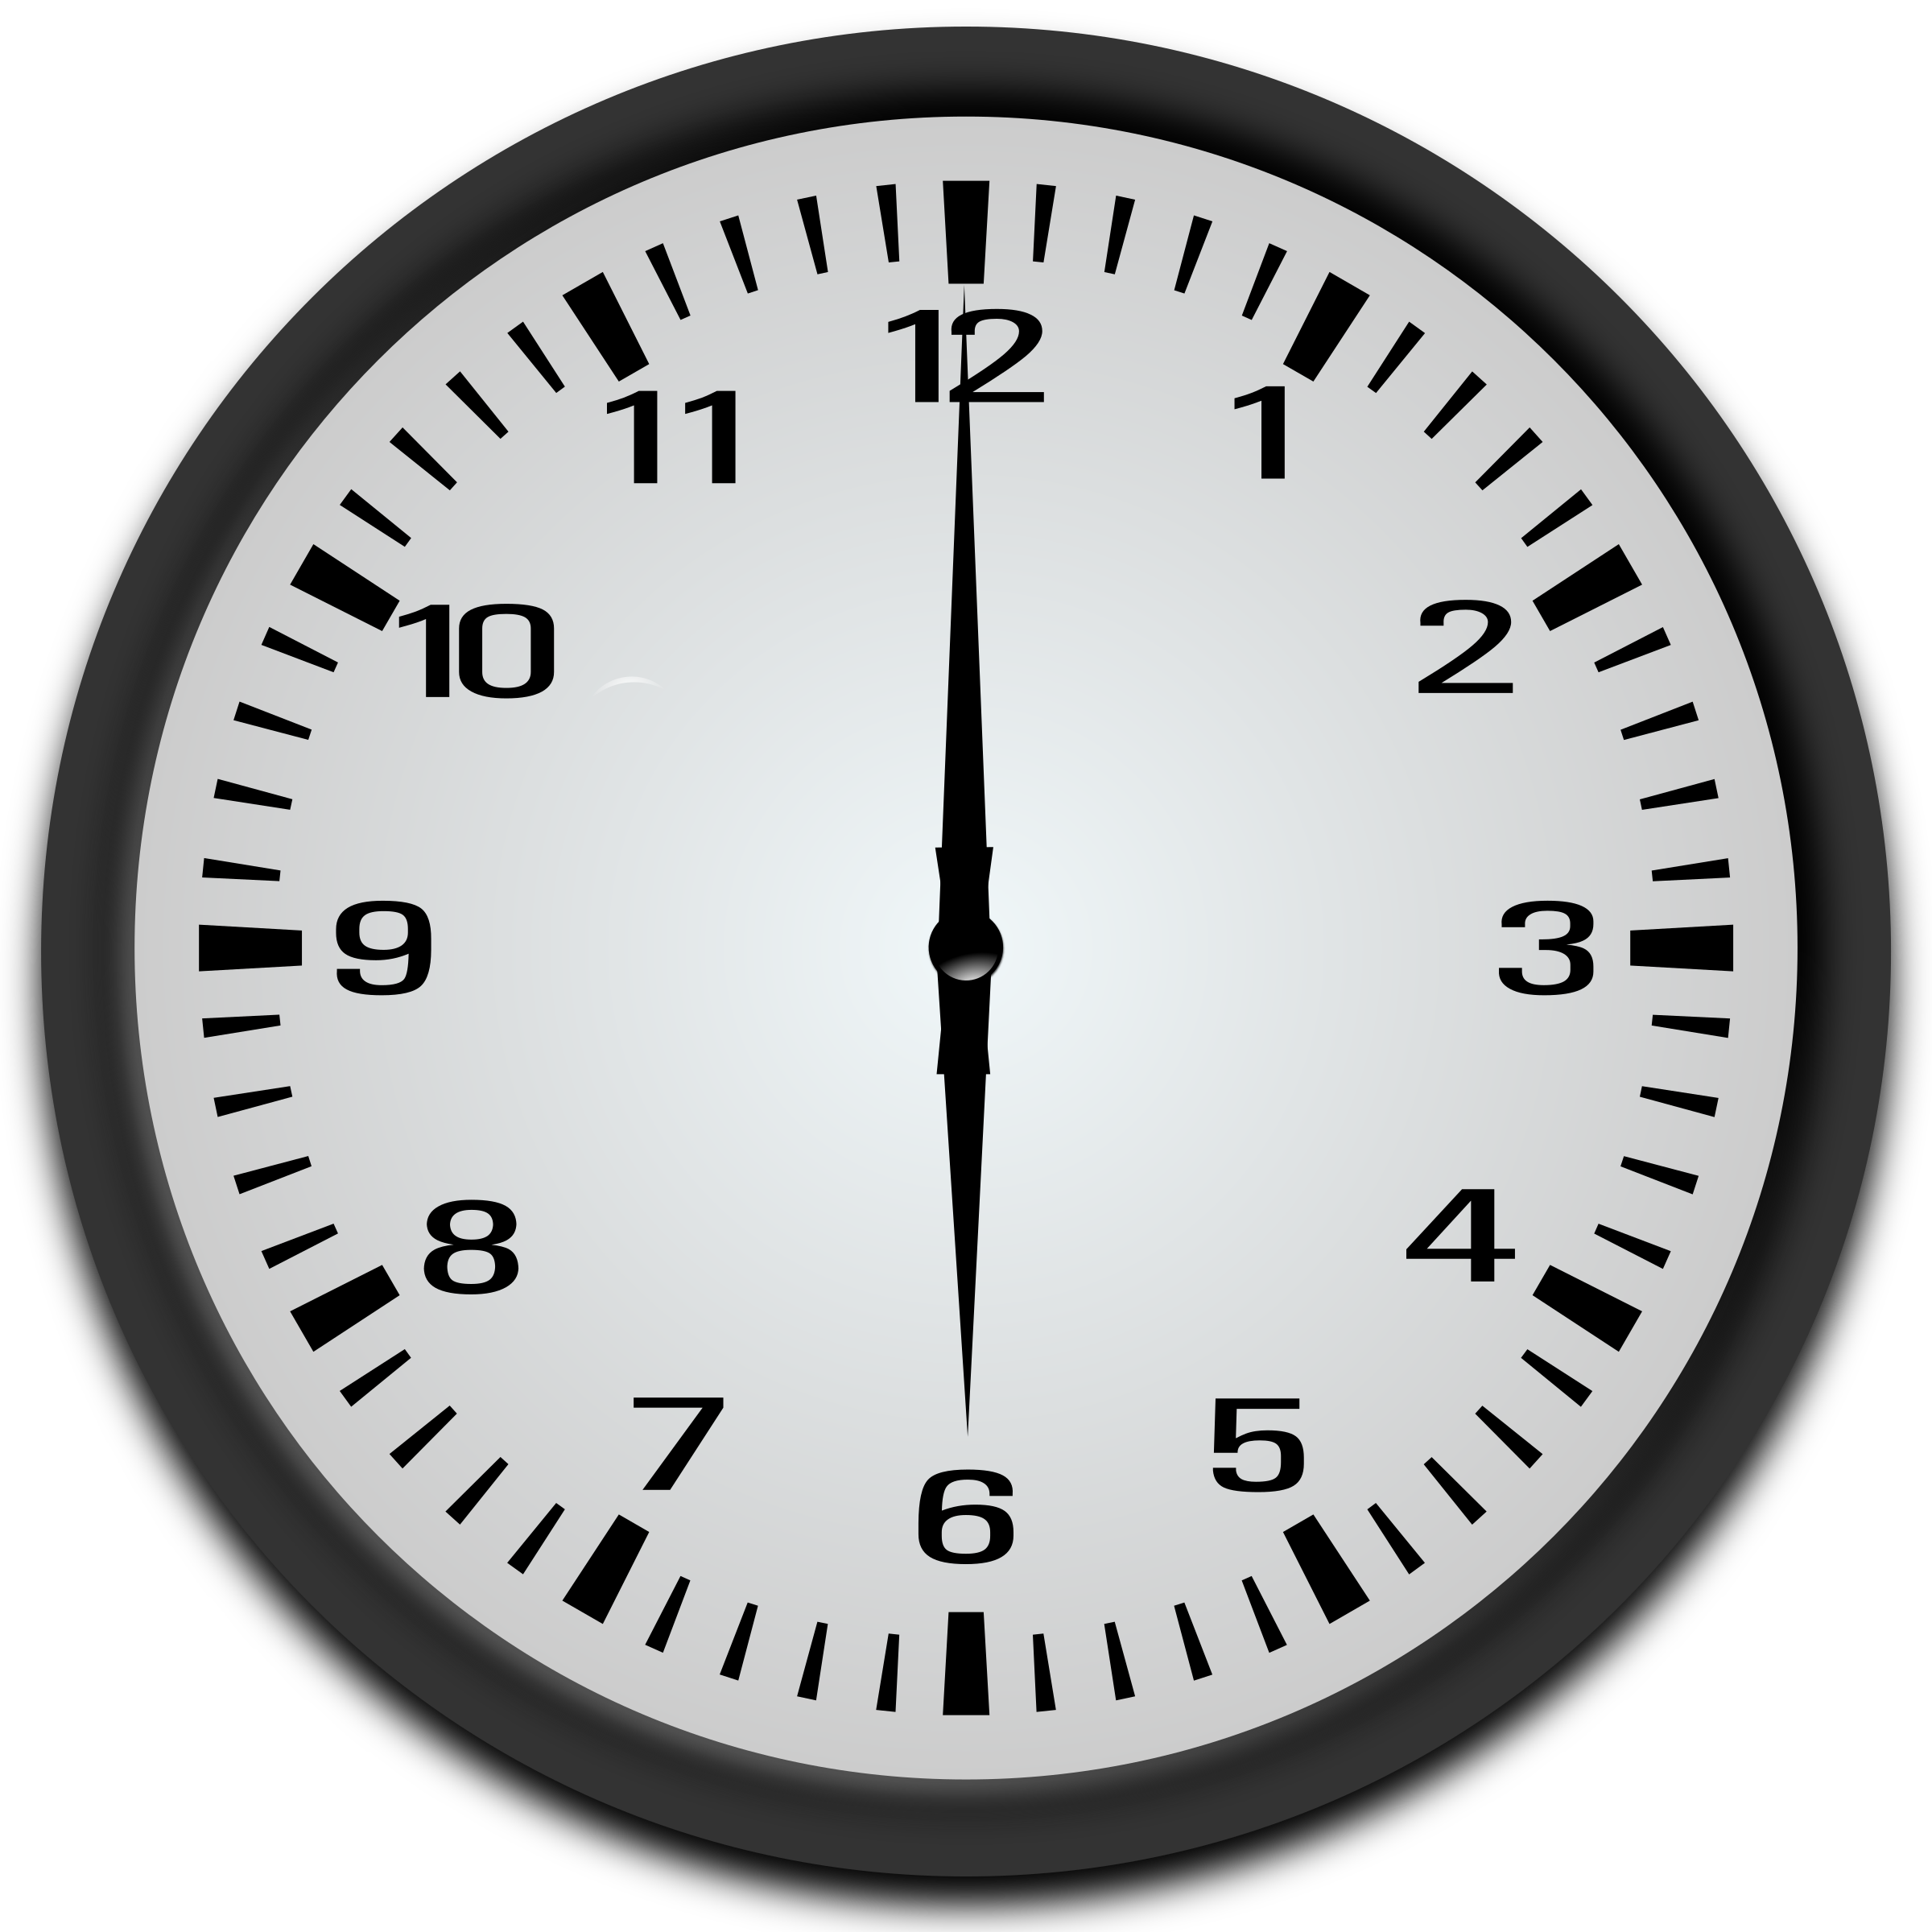 6 o clock clipart svg freeuse library Clipart - 6 o'clock svg freeuse library